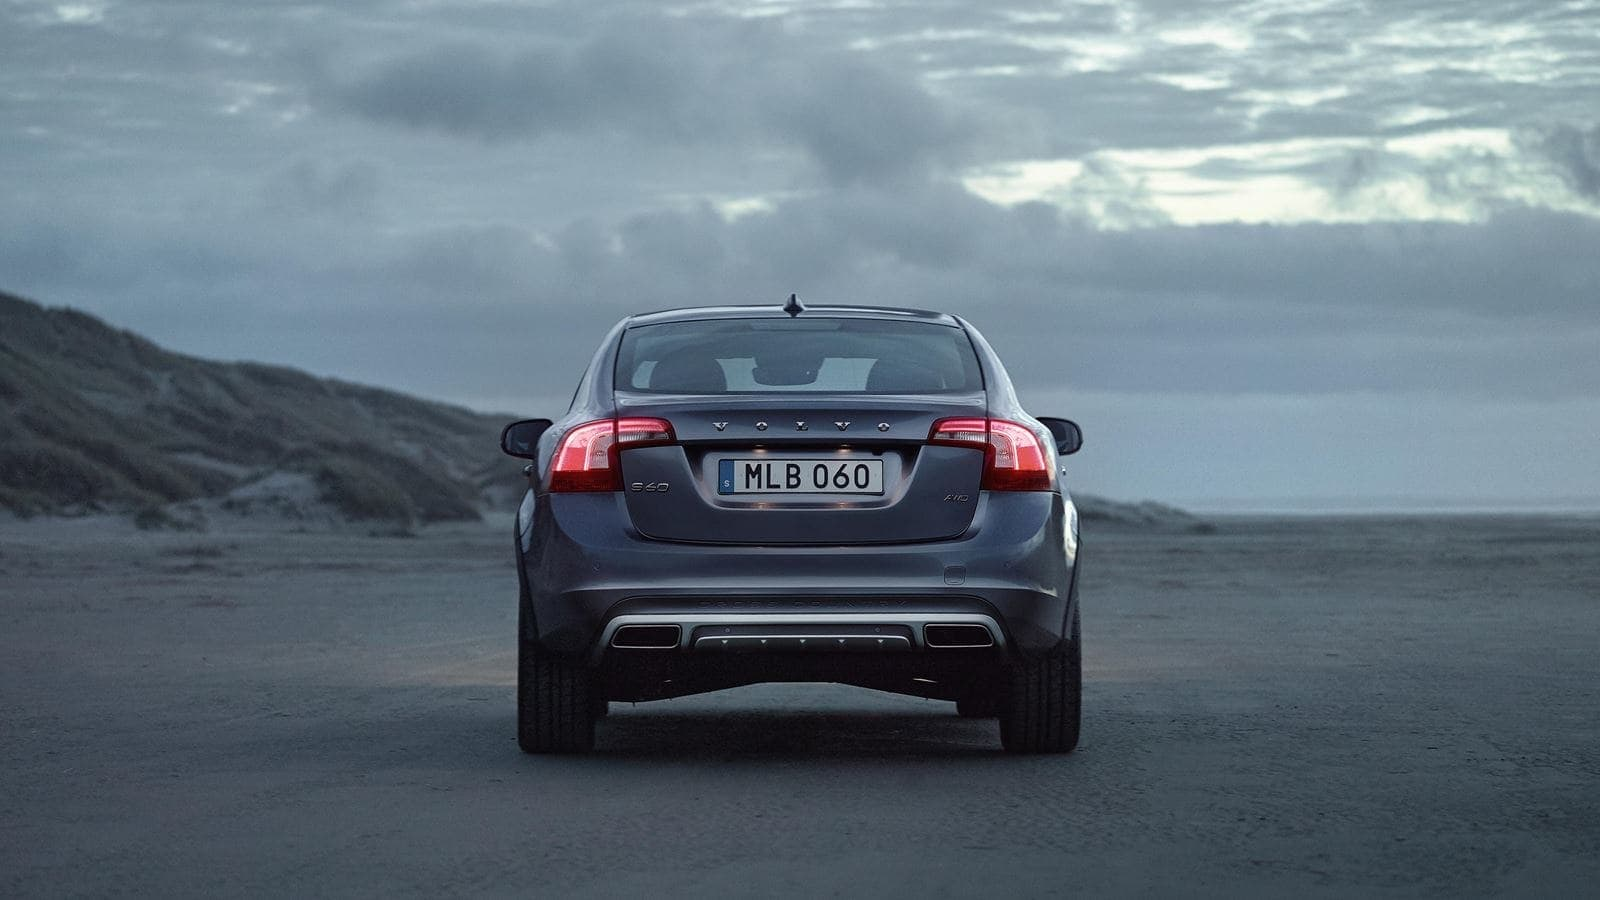 volvo s60 crosscountry exterior back patrik johall